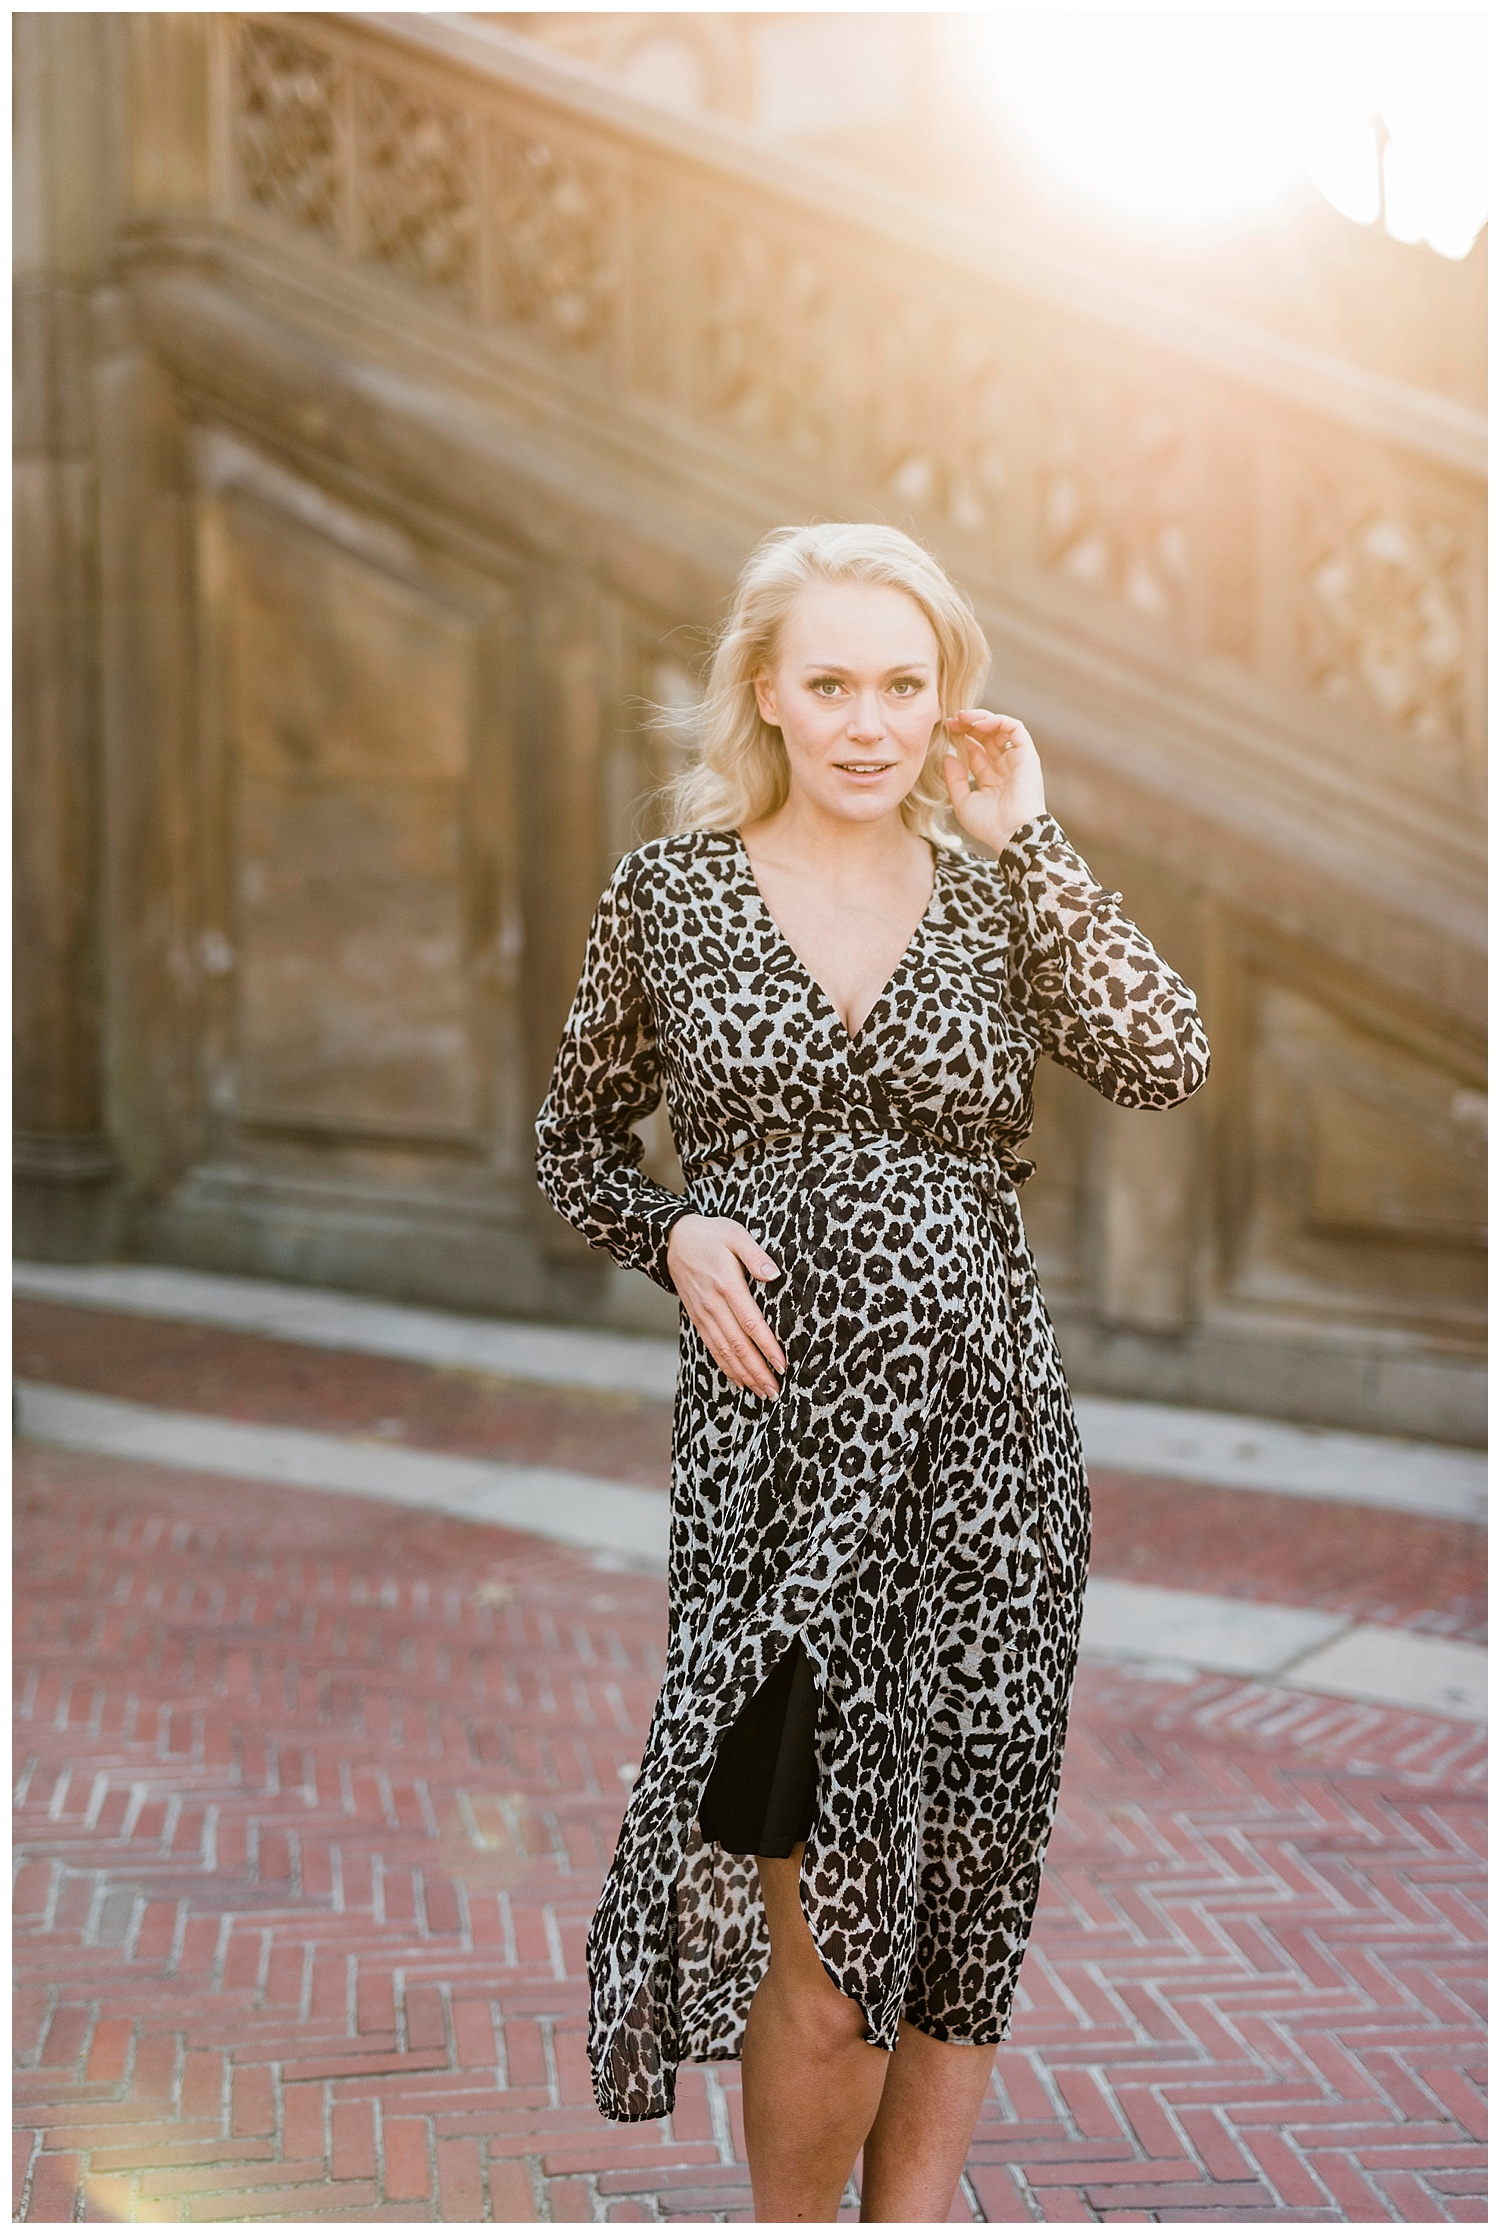 Krista_Maternity_Photos_Central_Park_NYC_Apollo_Fields_94.jpg